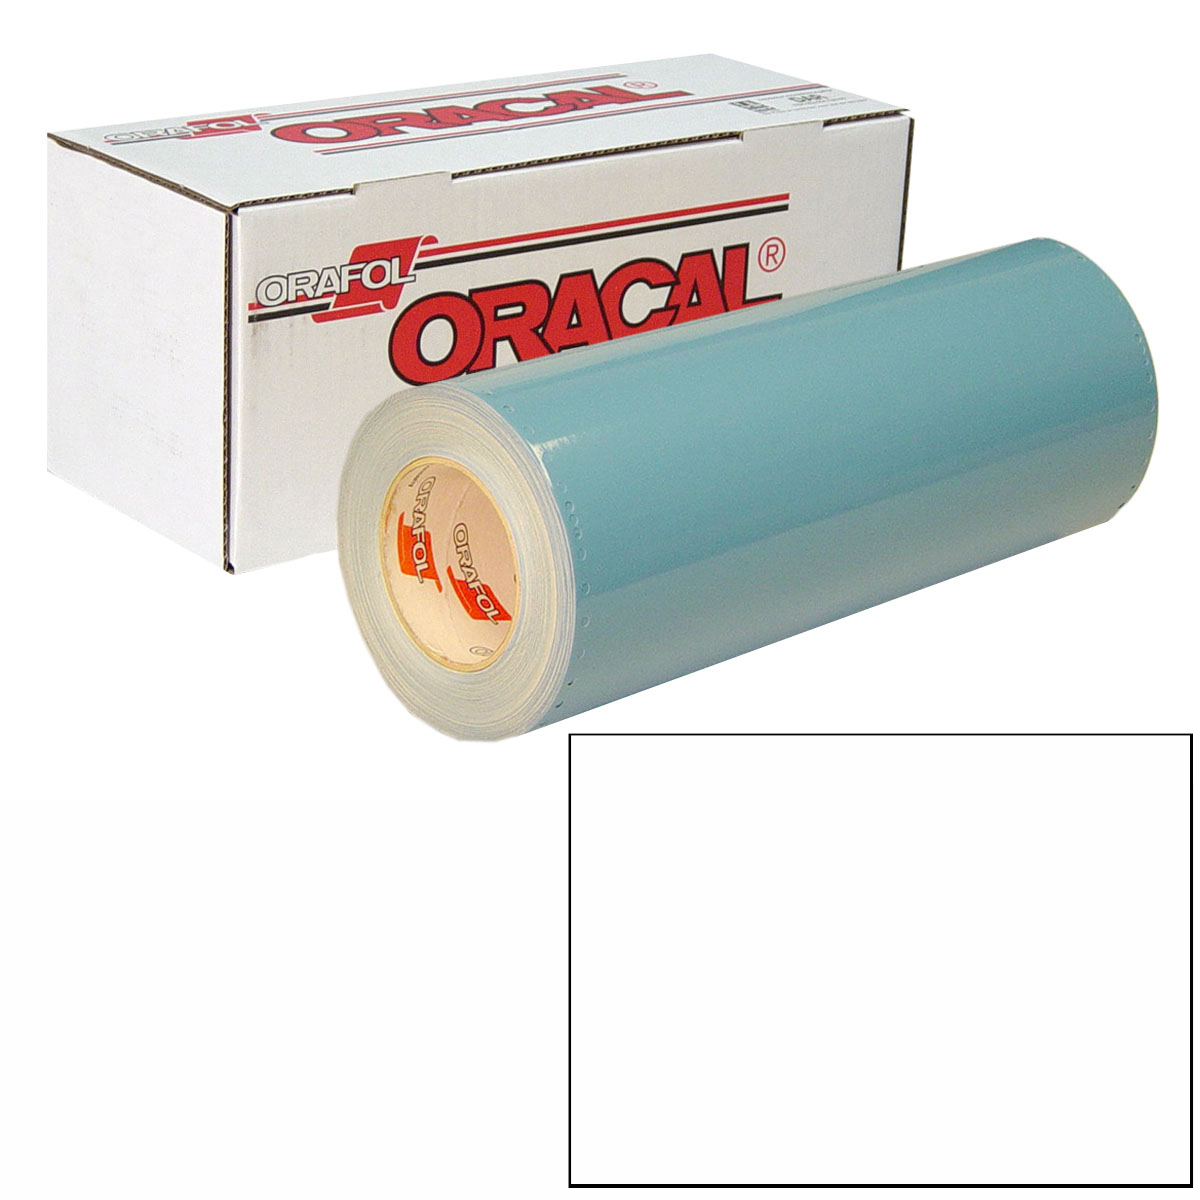 ORACAL 751 30In X 10Yd 000 Transparent